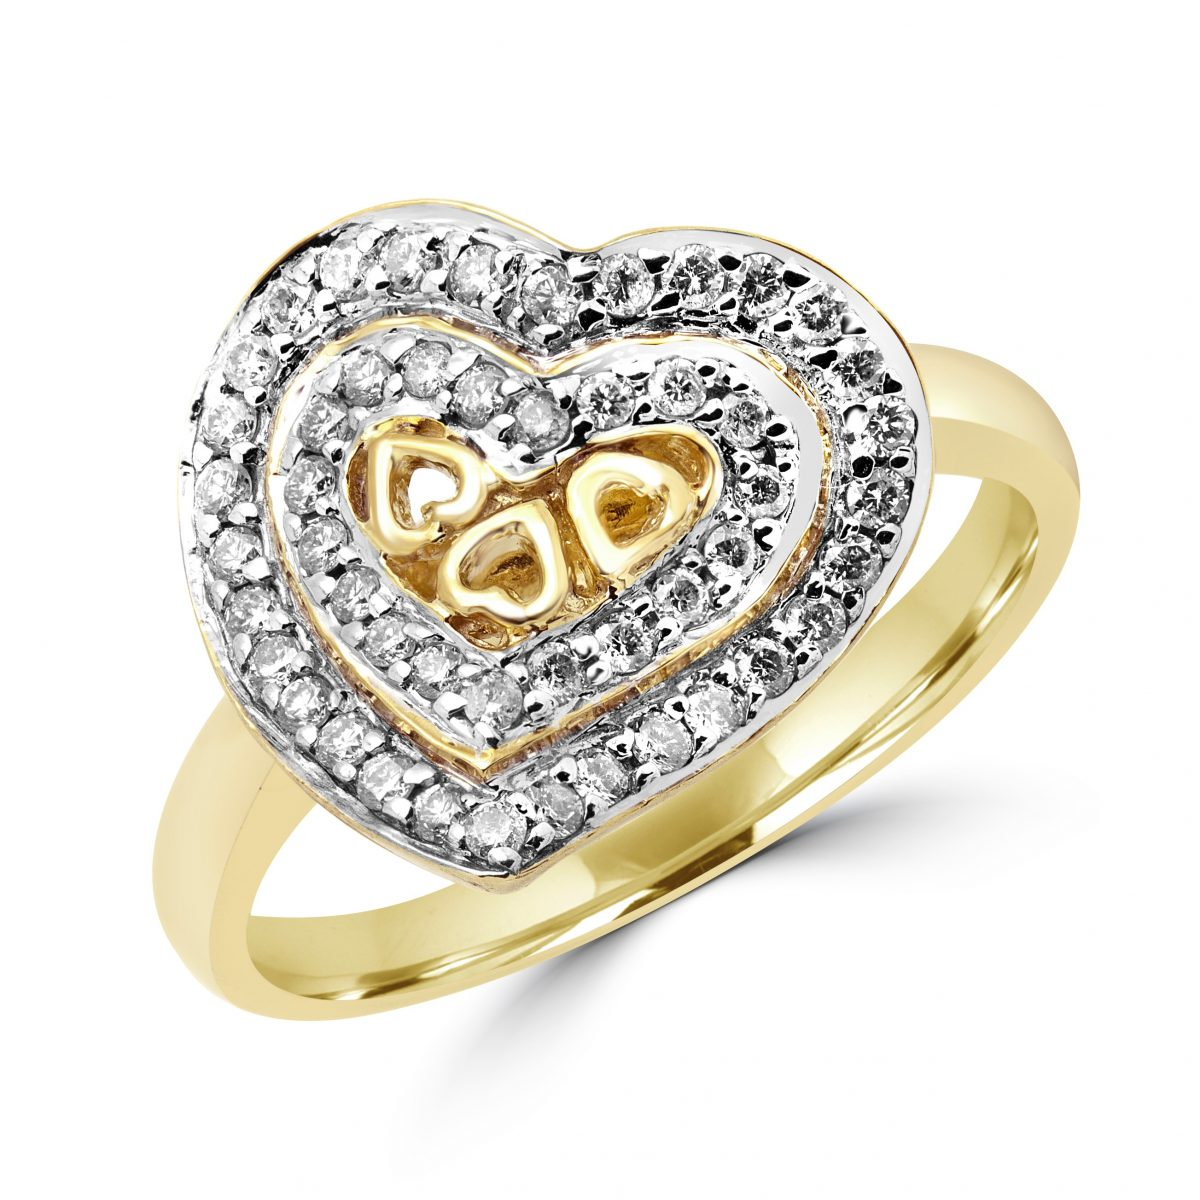 Pave heart cocktail ring 0.33 (ctw) in 10k yellow gold